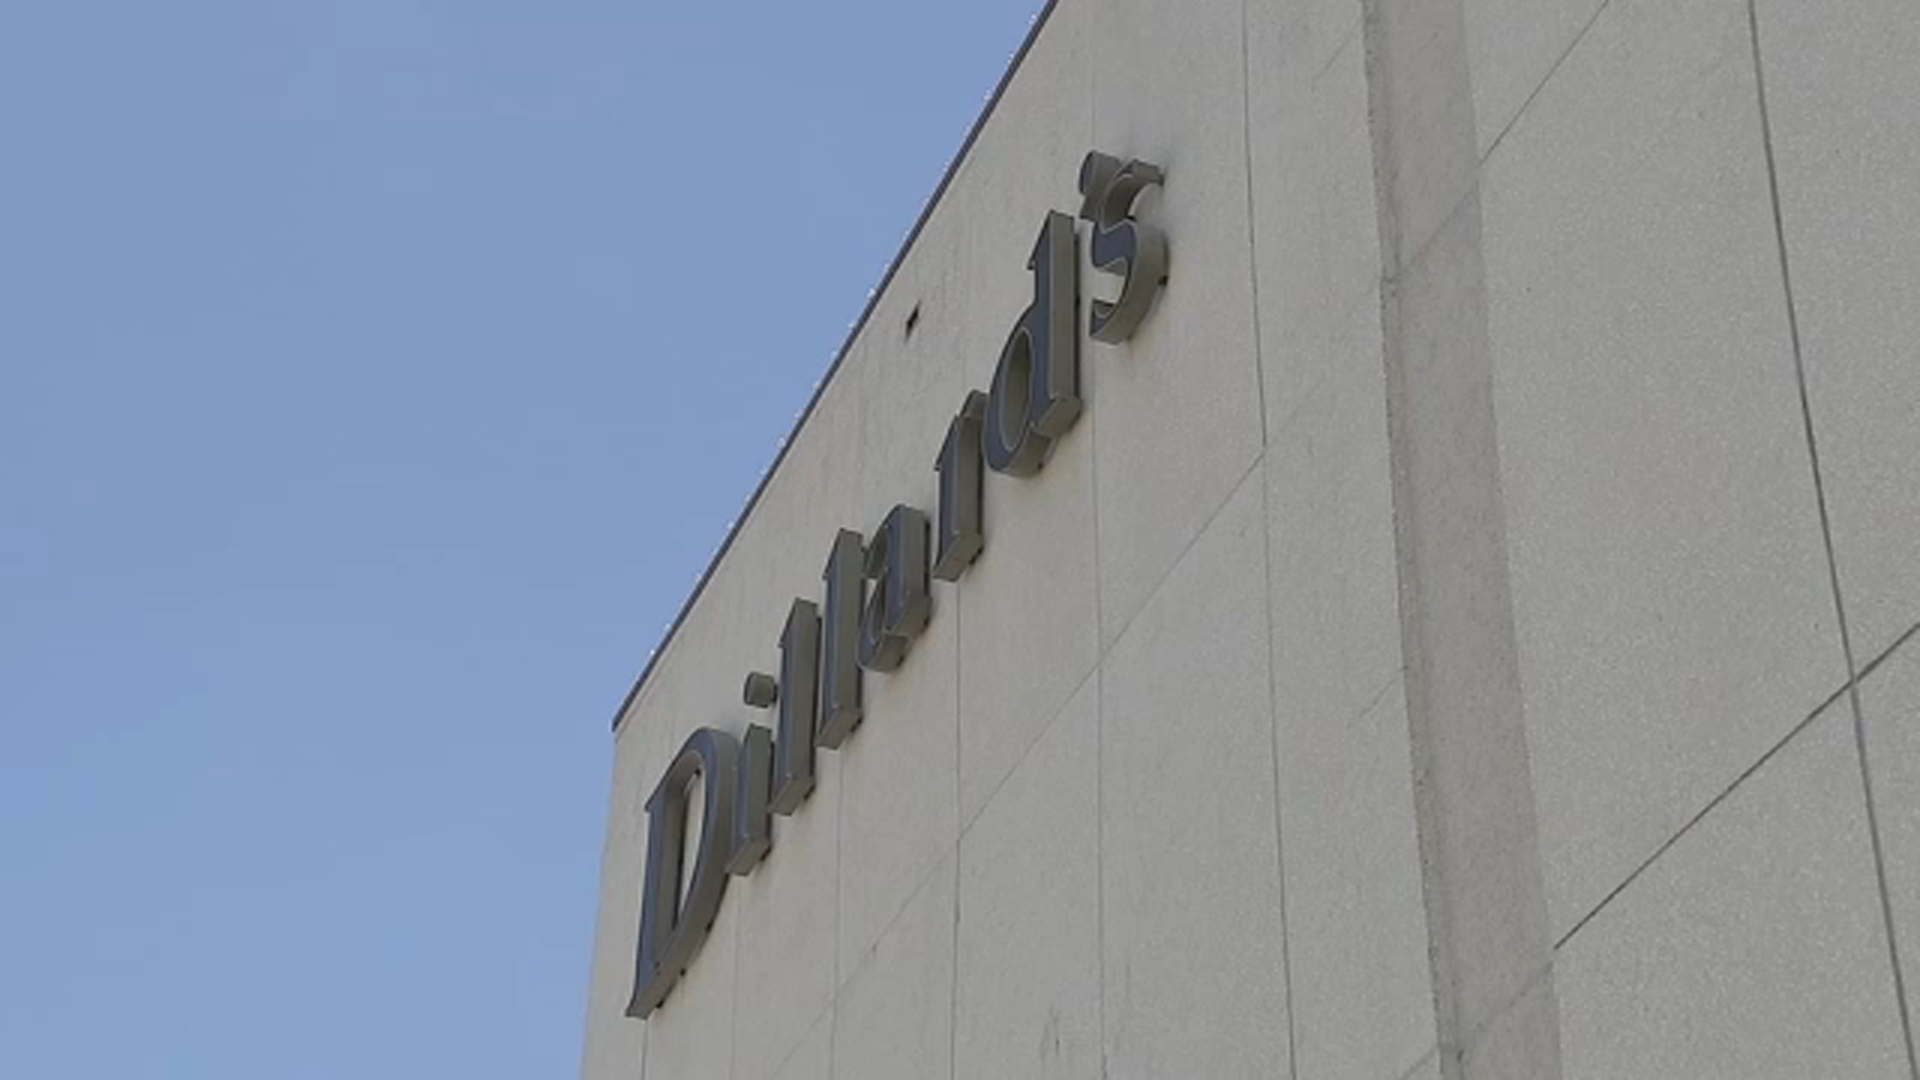 Coronavirus Houston Dillard S Department Store Open On 1st Day Of Stay Home Order Abc13 Houston See dillards hours, opening and closing time of dillards store, check out hours of operation on saturday, sunday, holidays hours and business timing. coronavirus houston dillard s